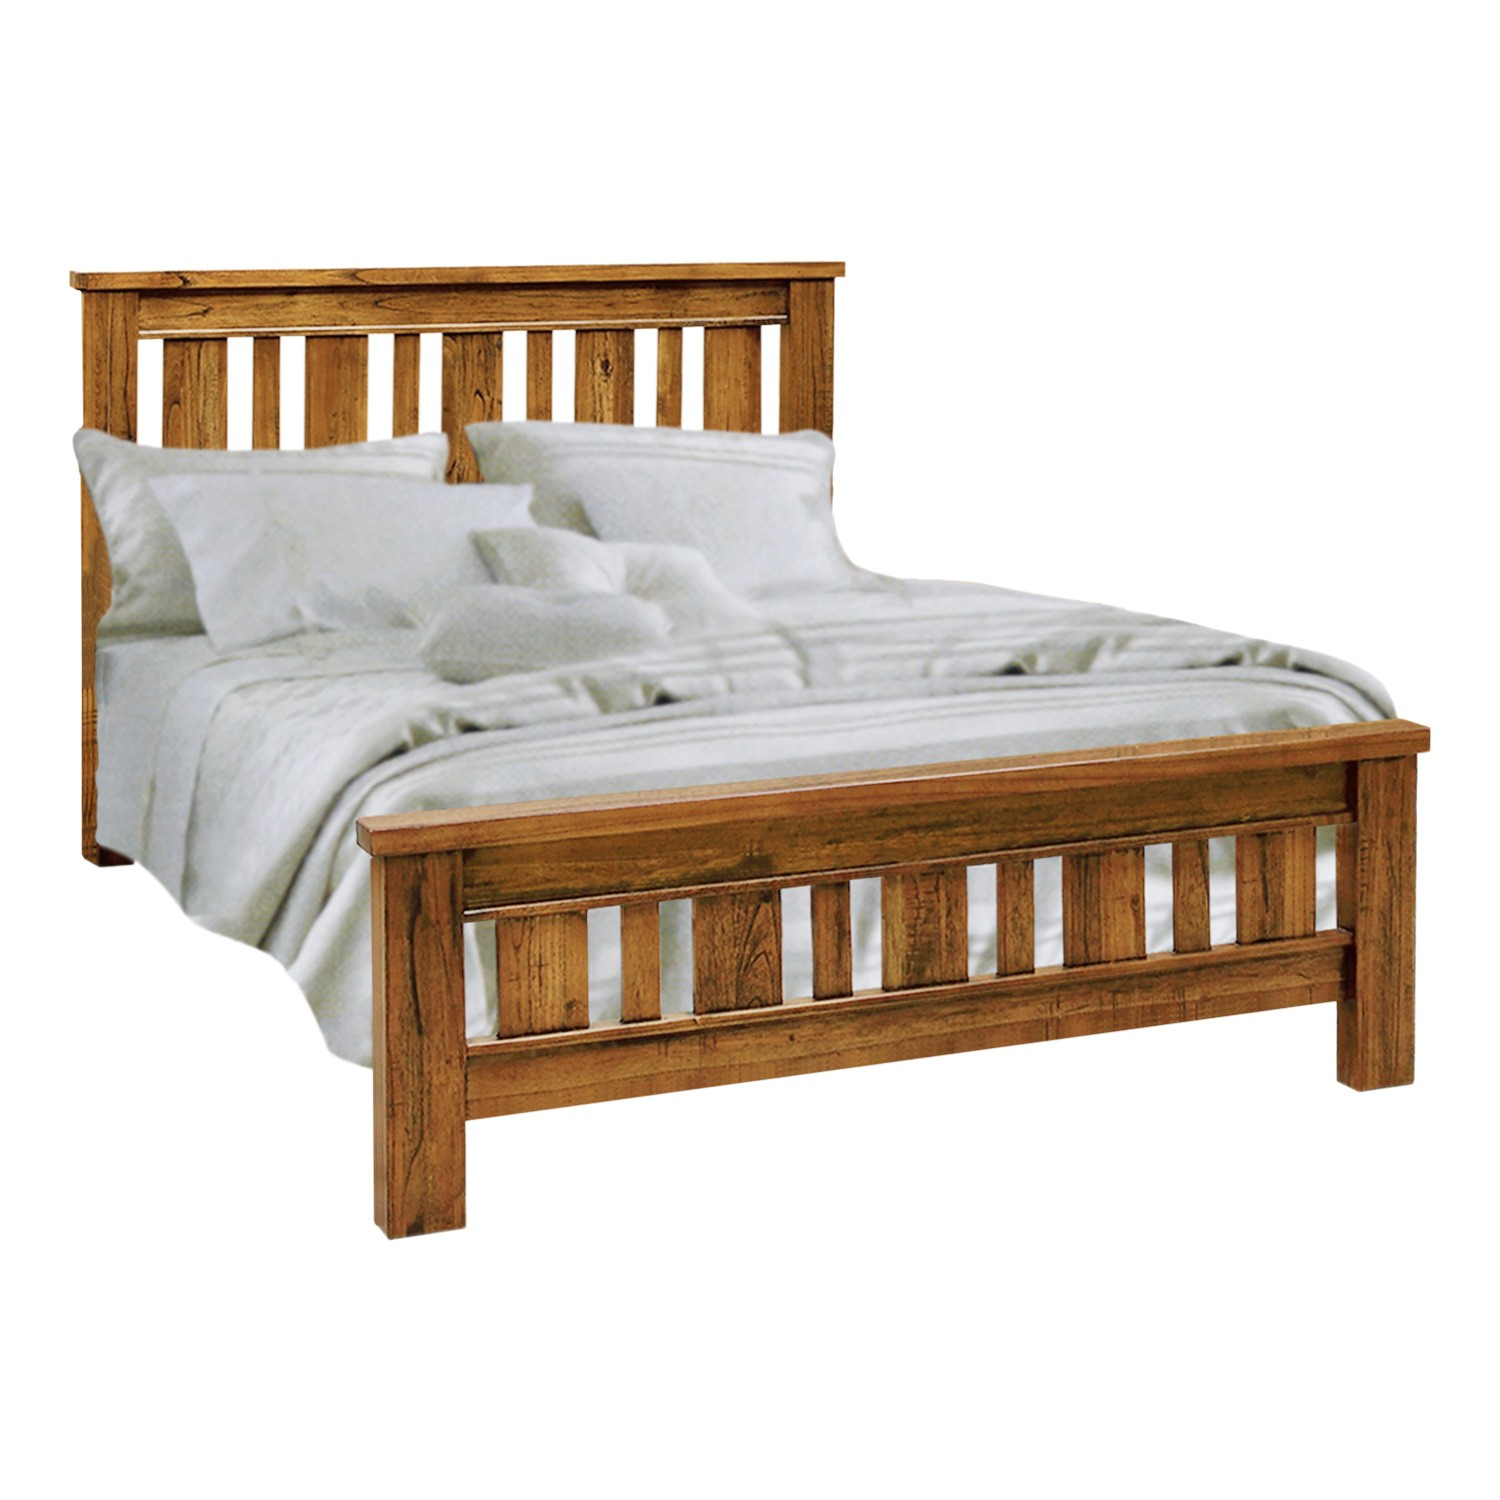 Montana Hardwood Timber Federation Bed, Queen